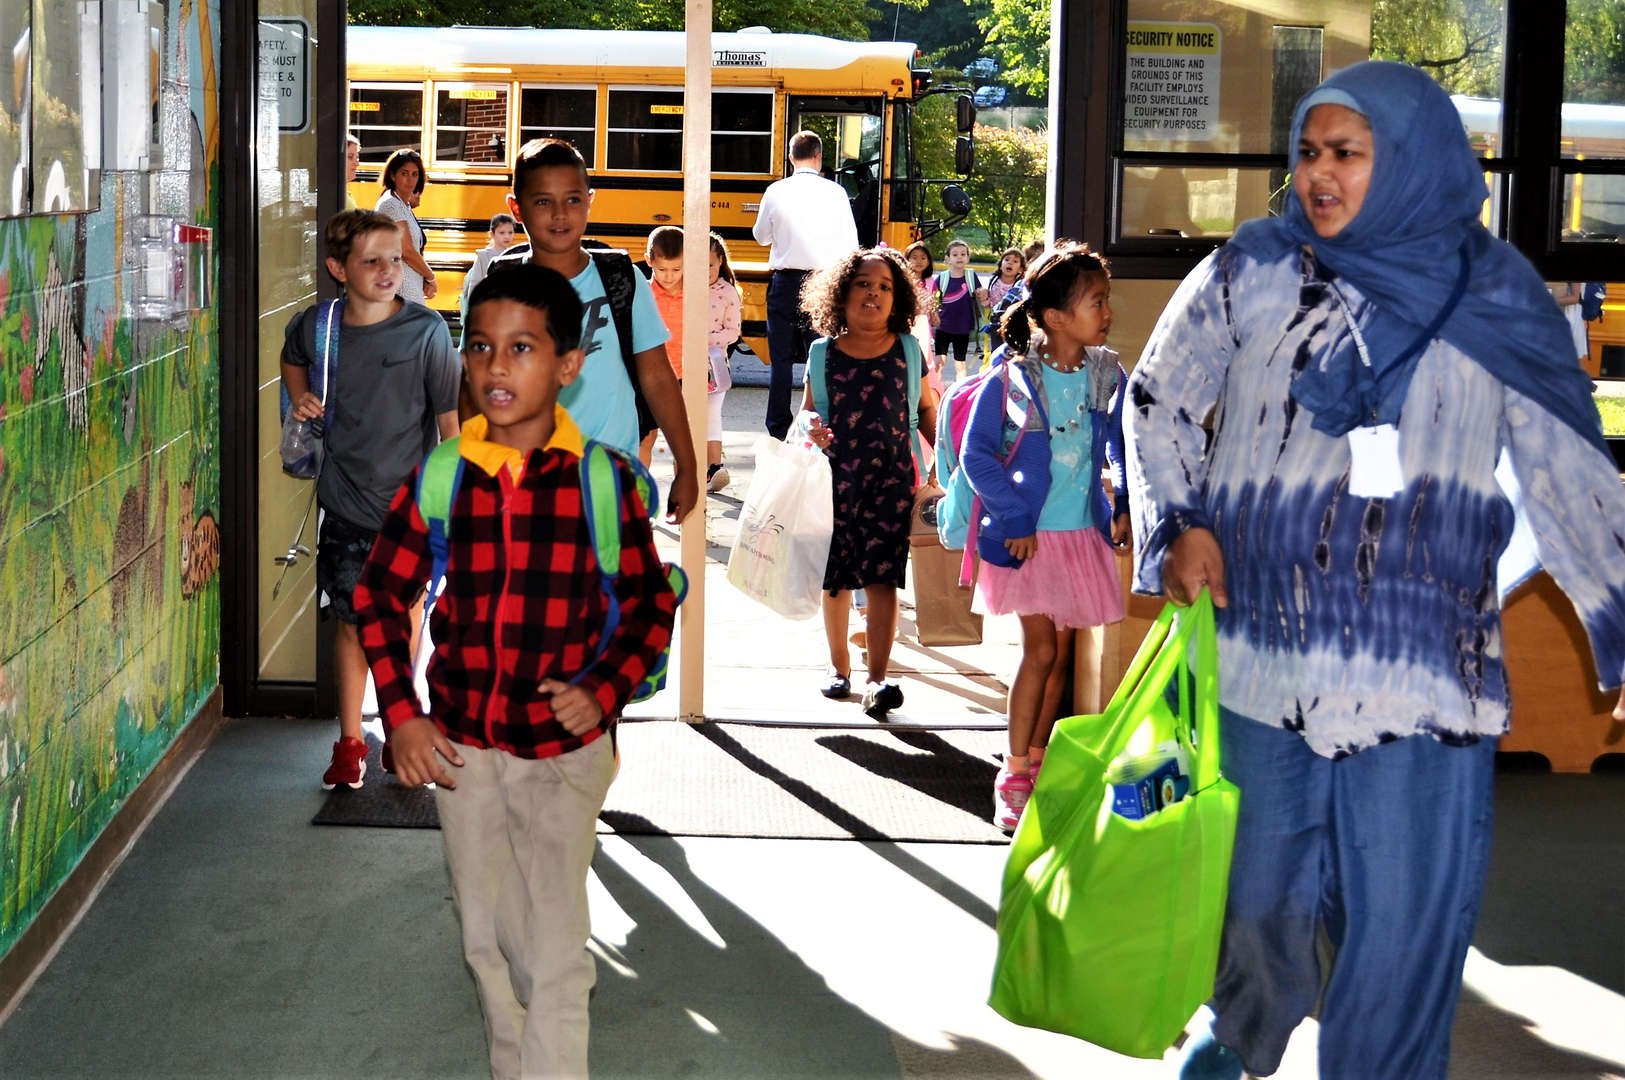 Students walk into the school after getting off the bus.